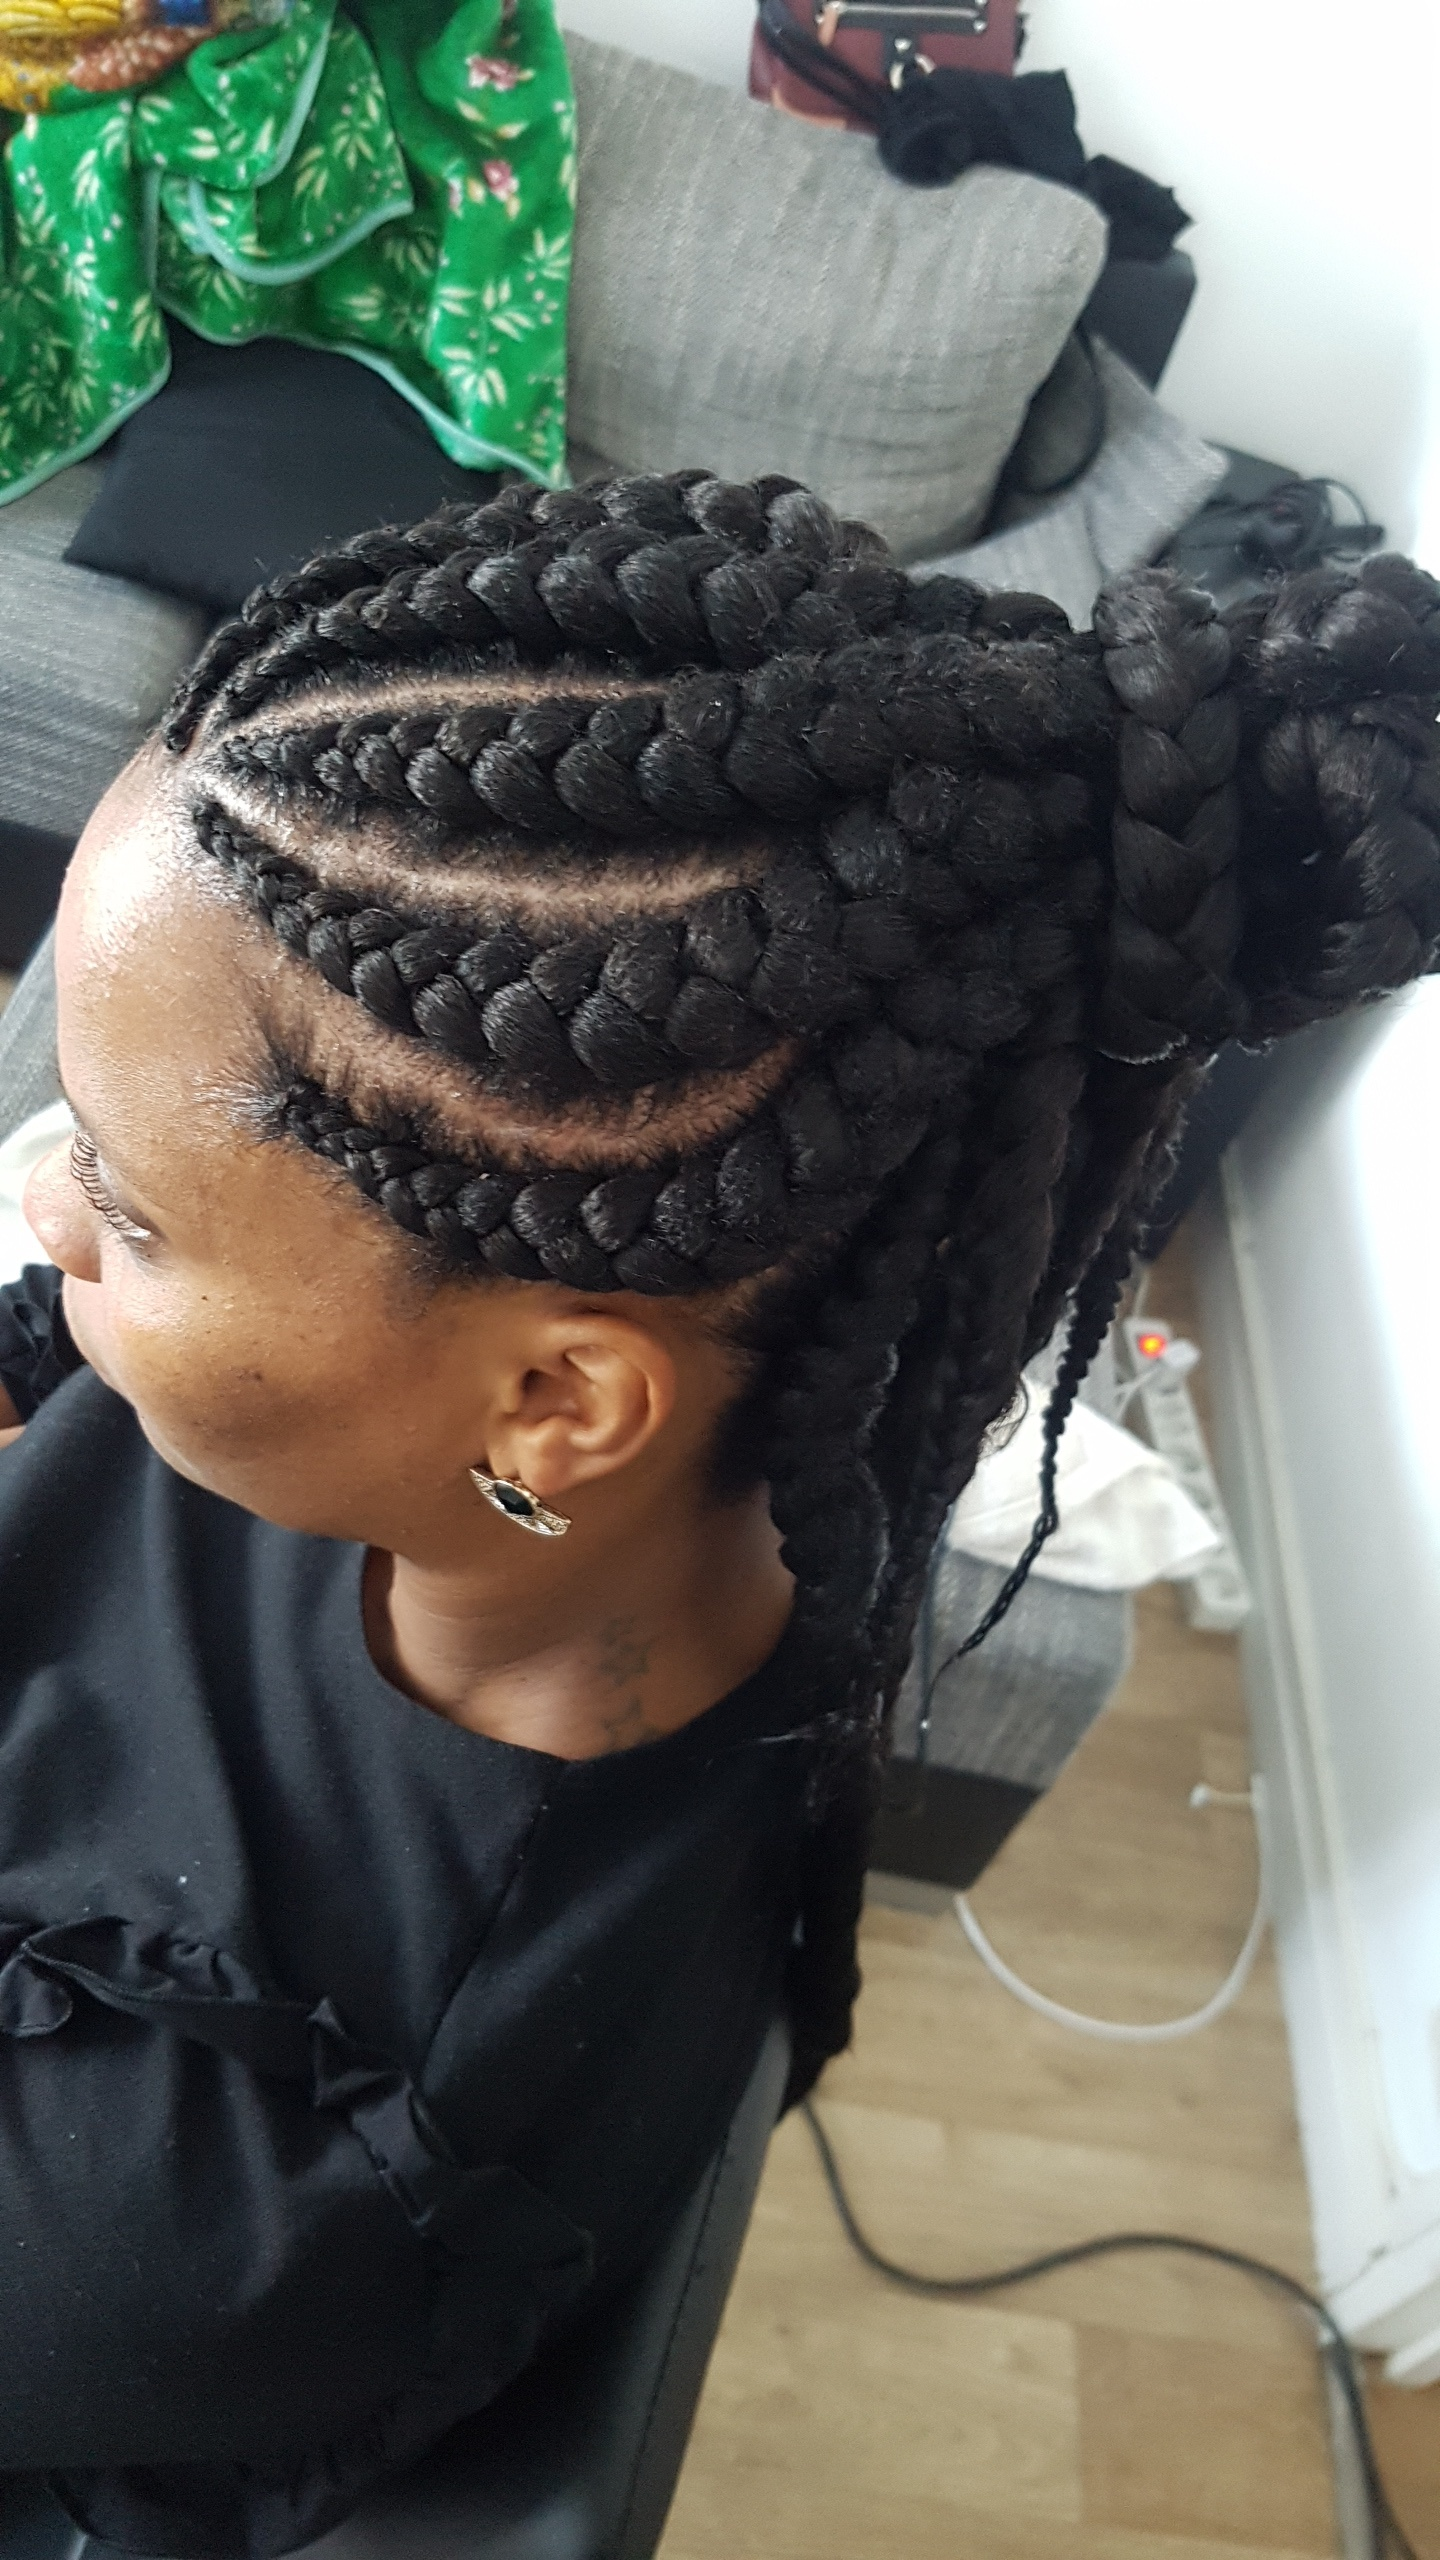 salon de coiffure afro tresse tresses box braids crochet braids vanilles tissages paris 75 77 78 91 92 93 94 95 KHTRAXLJ